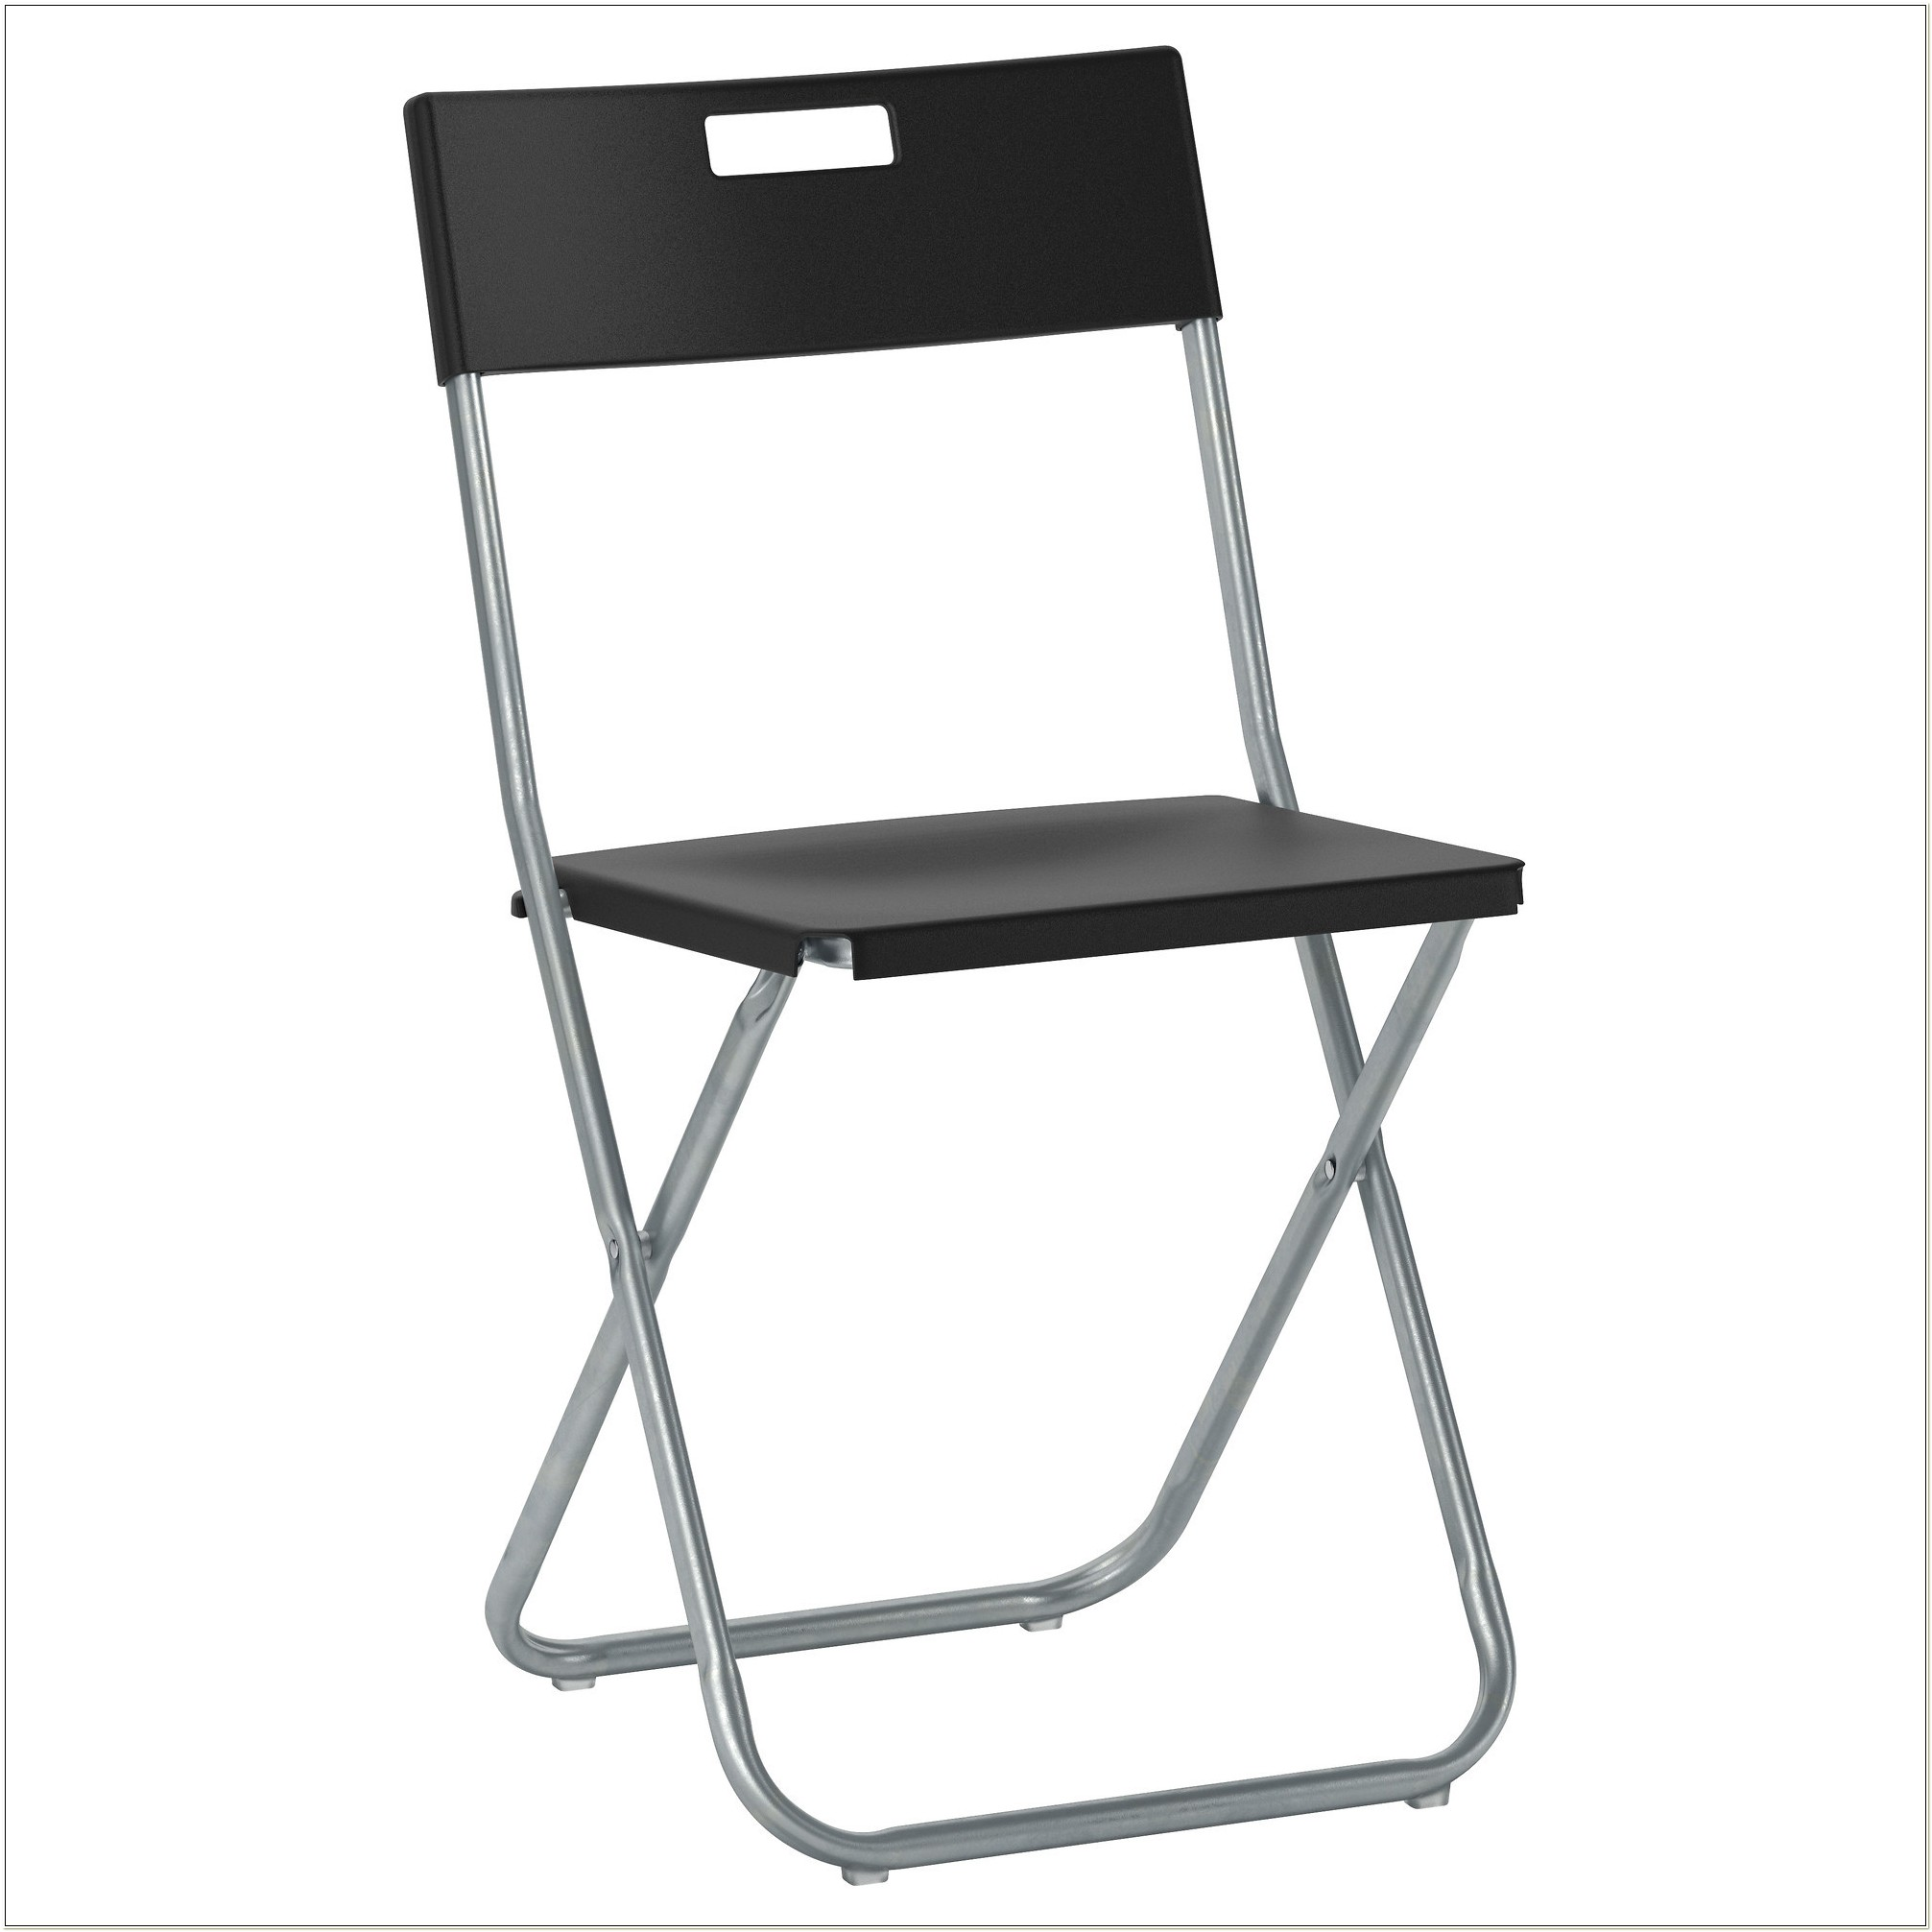 Ikea Plastic Folding Chairs